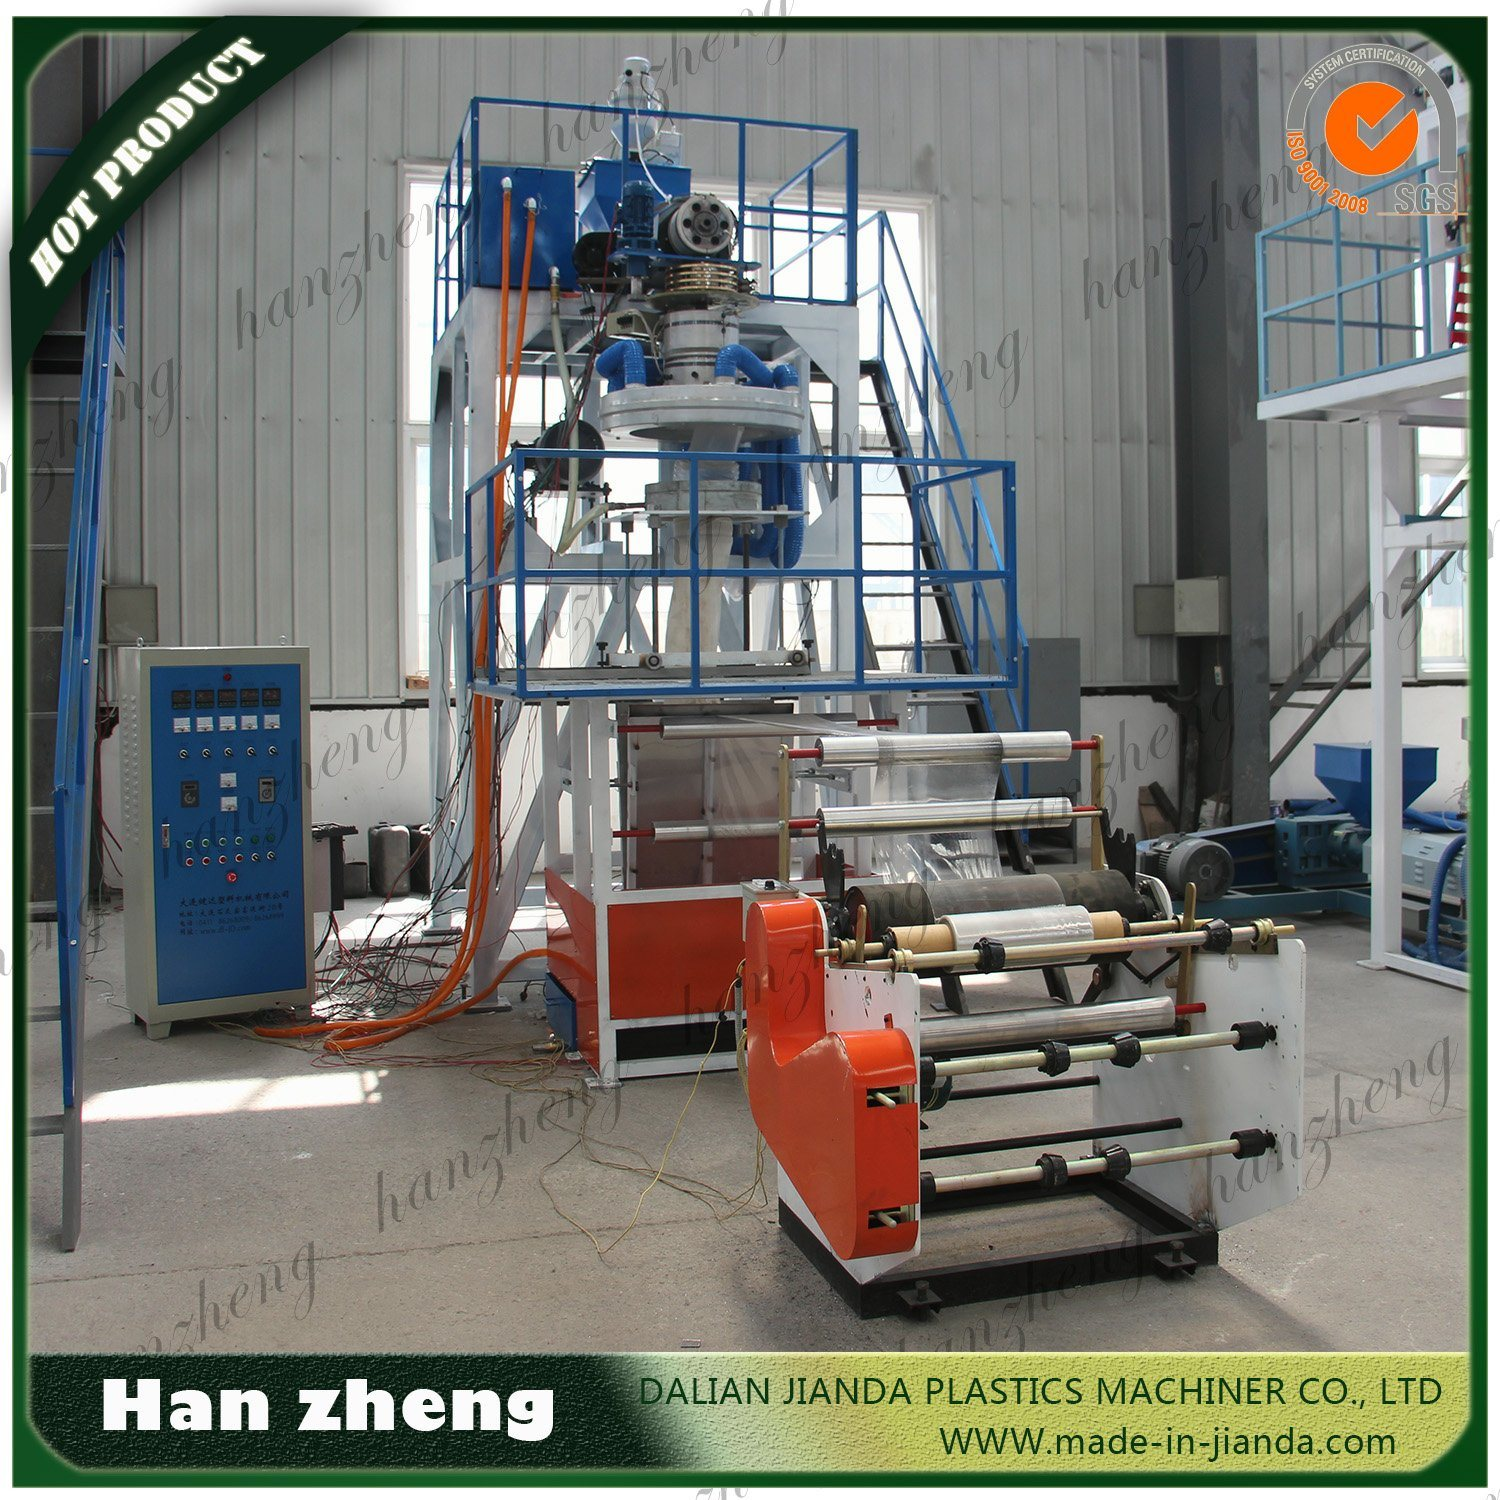 PP Blown Film Machine with Water Cooling System Sjm-Z40-2-850